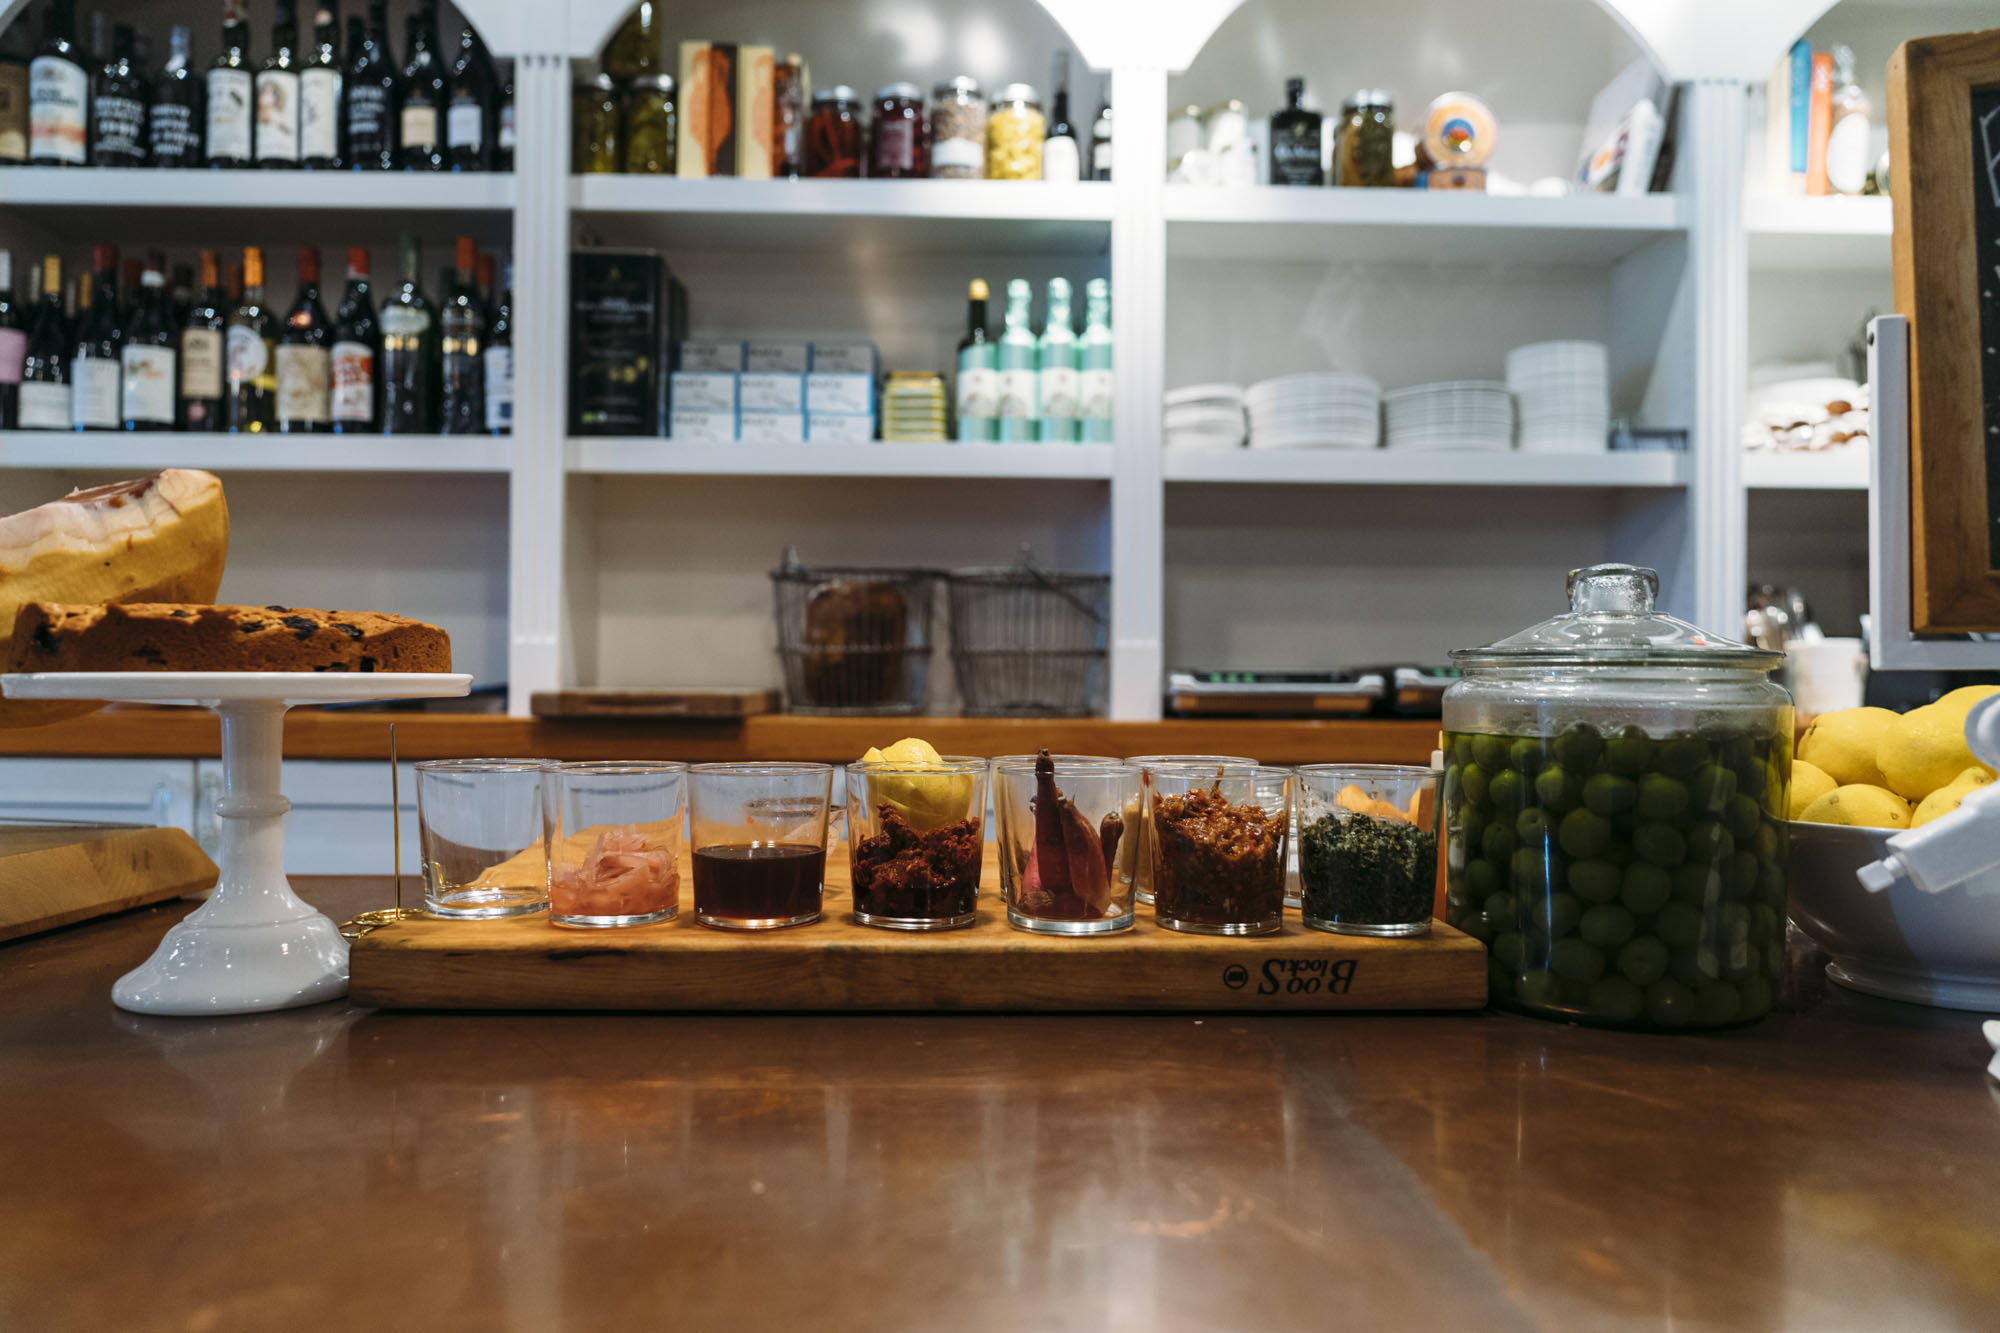 The Barnacle in Seattle's counter has olives, lemons, glasses and drinks.